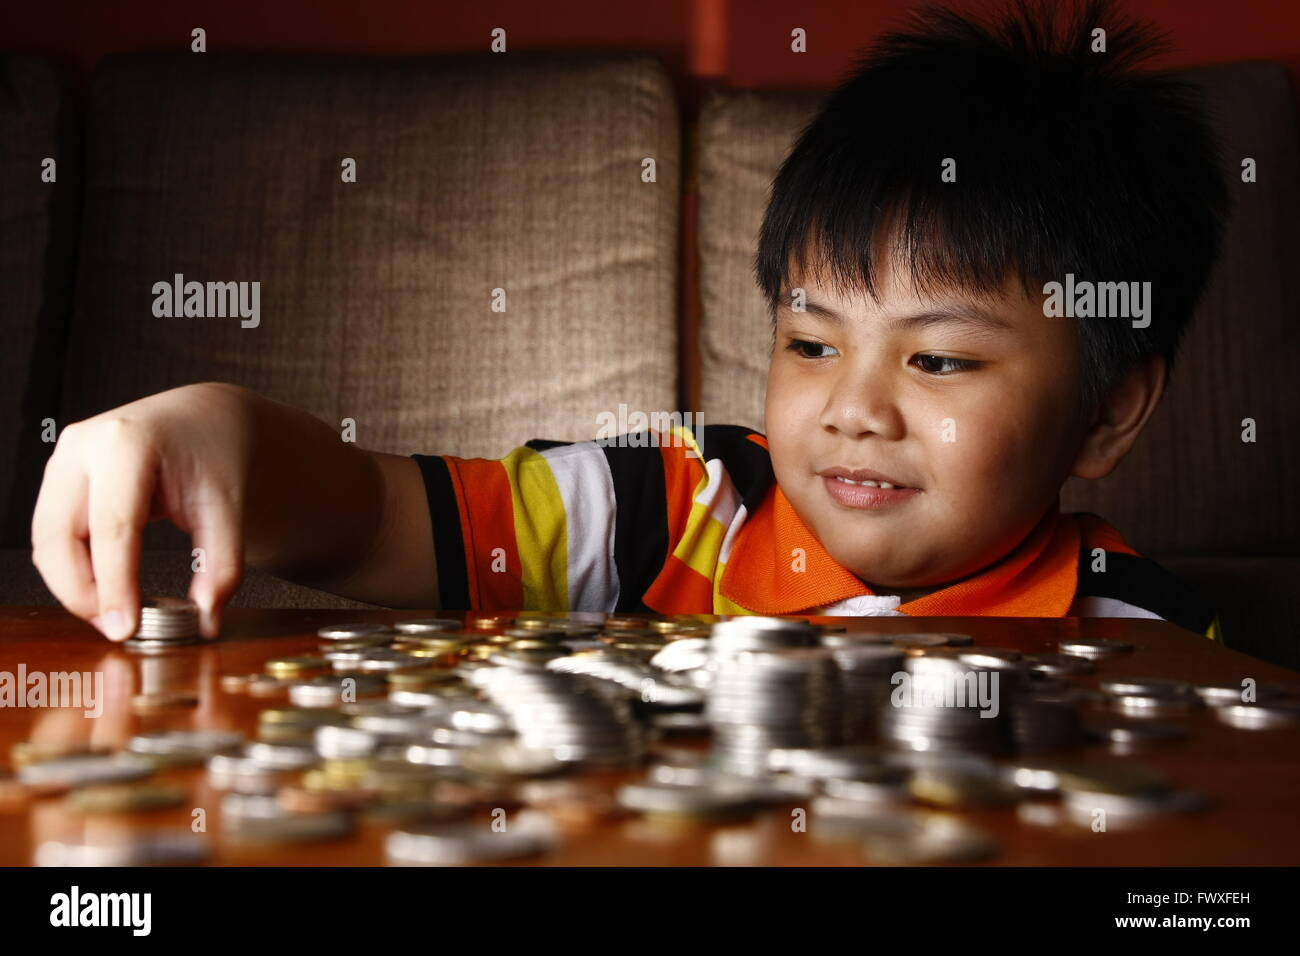 Young Boy Stacking or Piling Coins - Stock Image